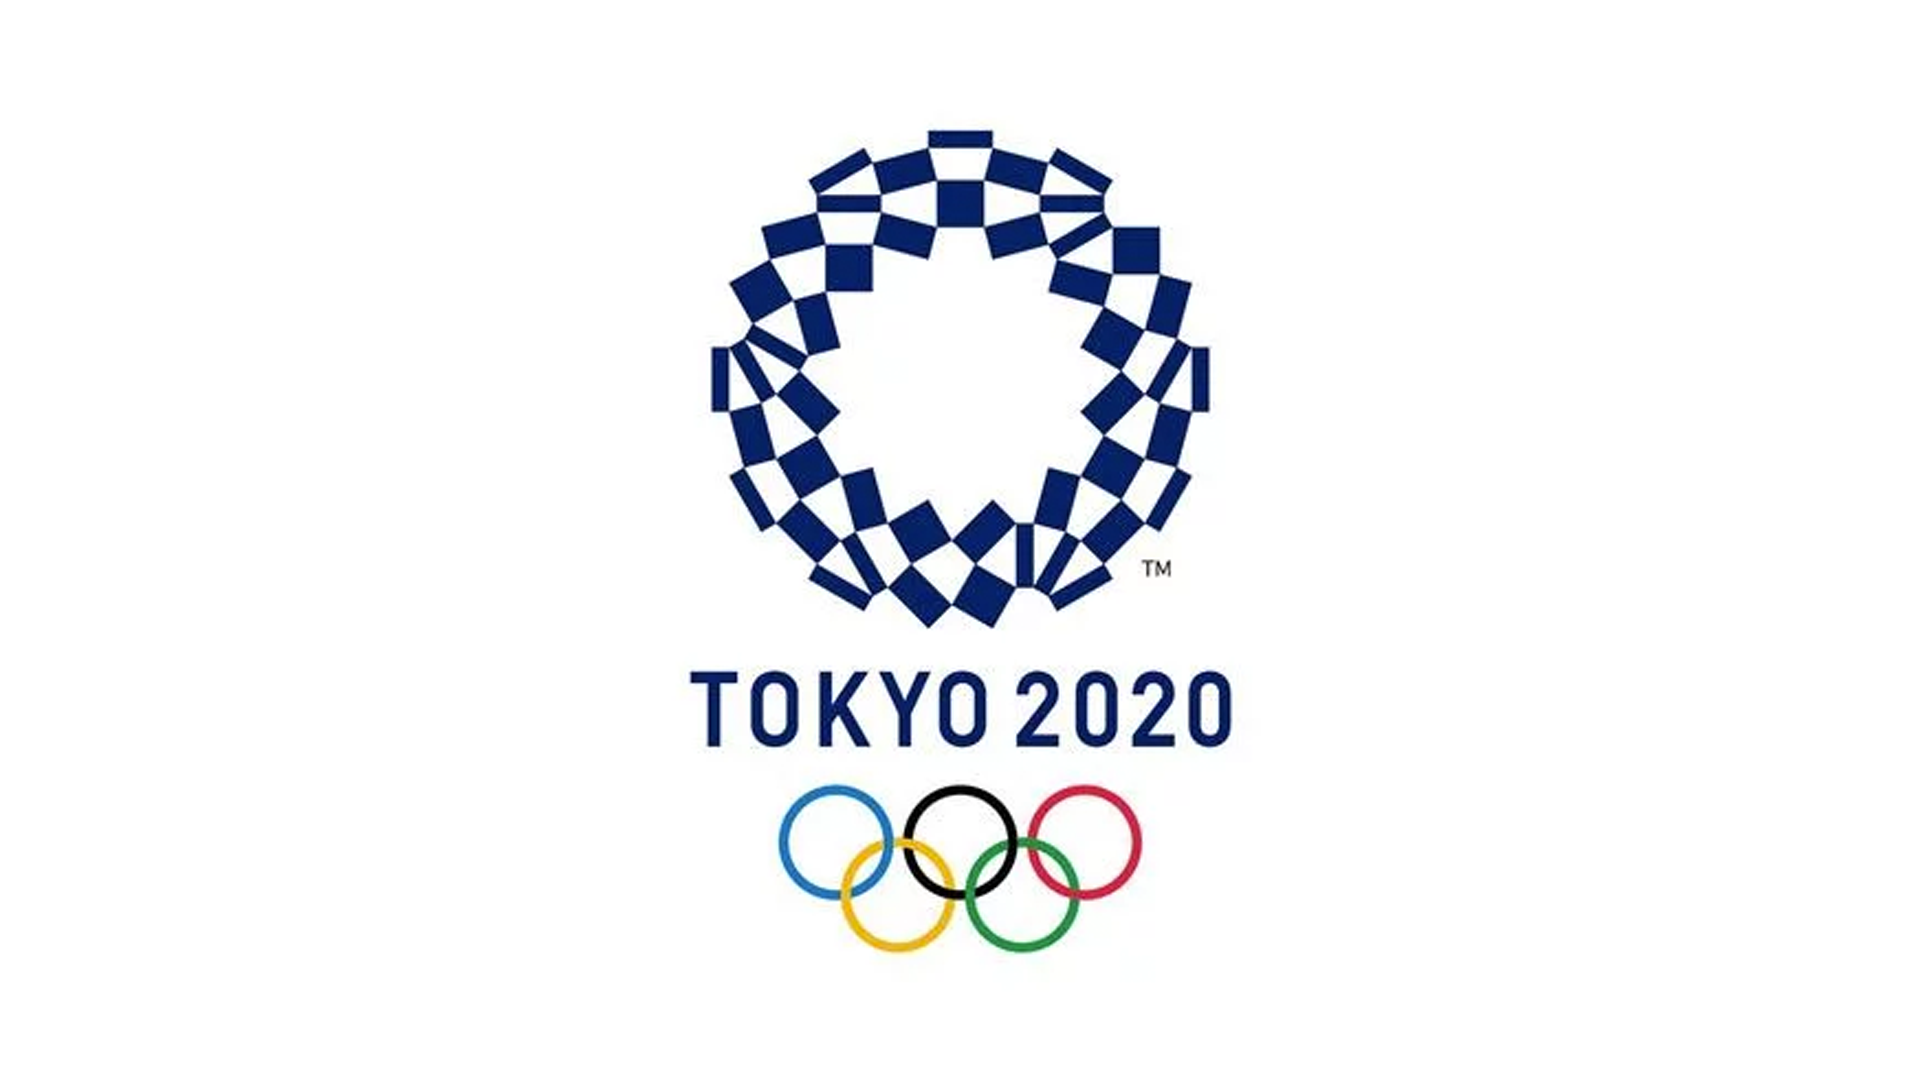 Schedule confirmed for Tokyo 2020 Olympic Games Rugby Sevens